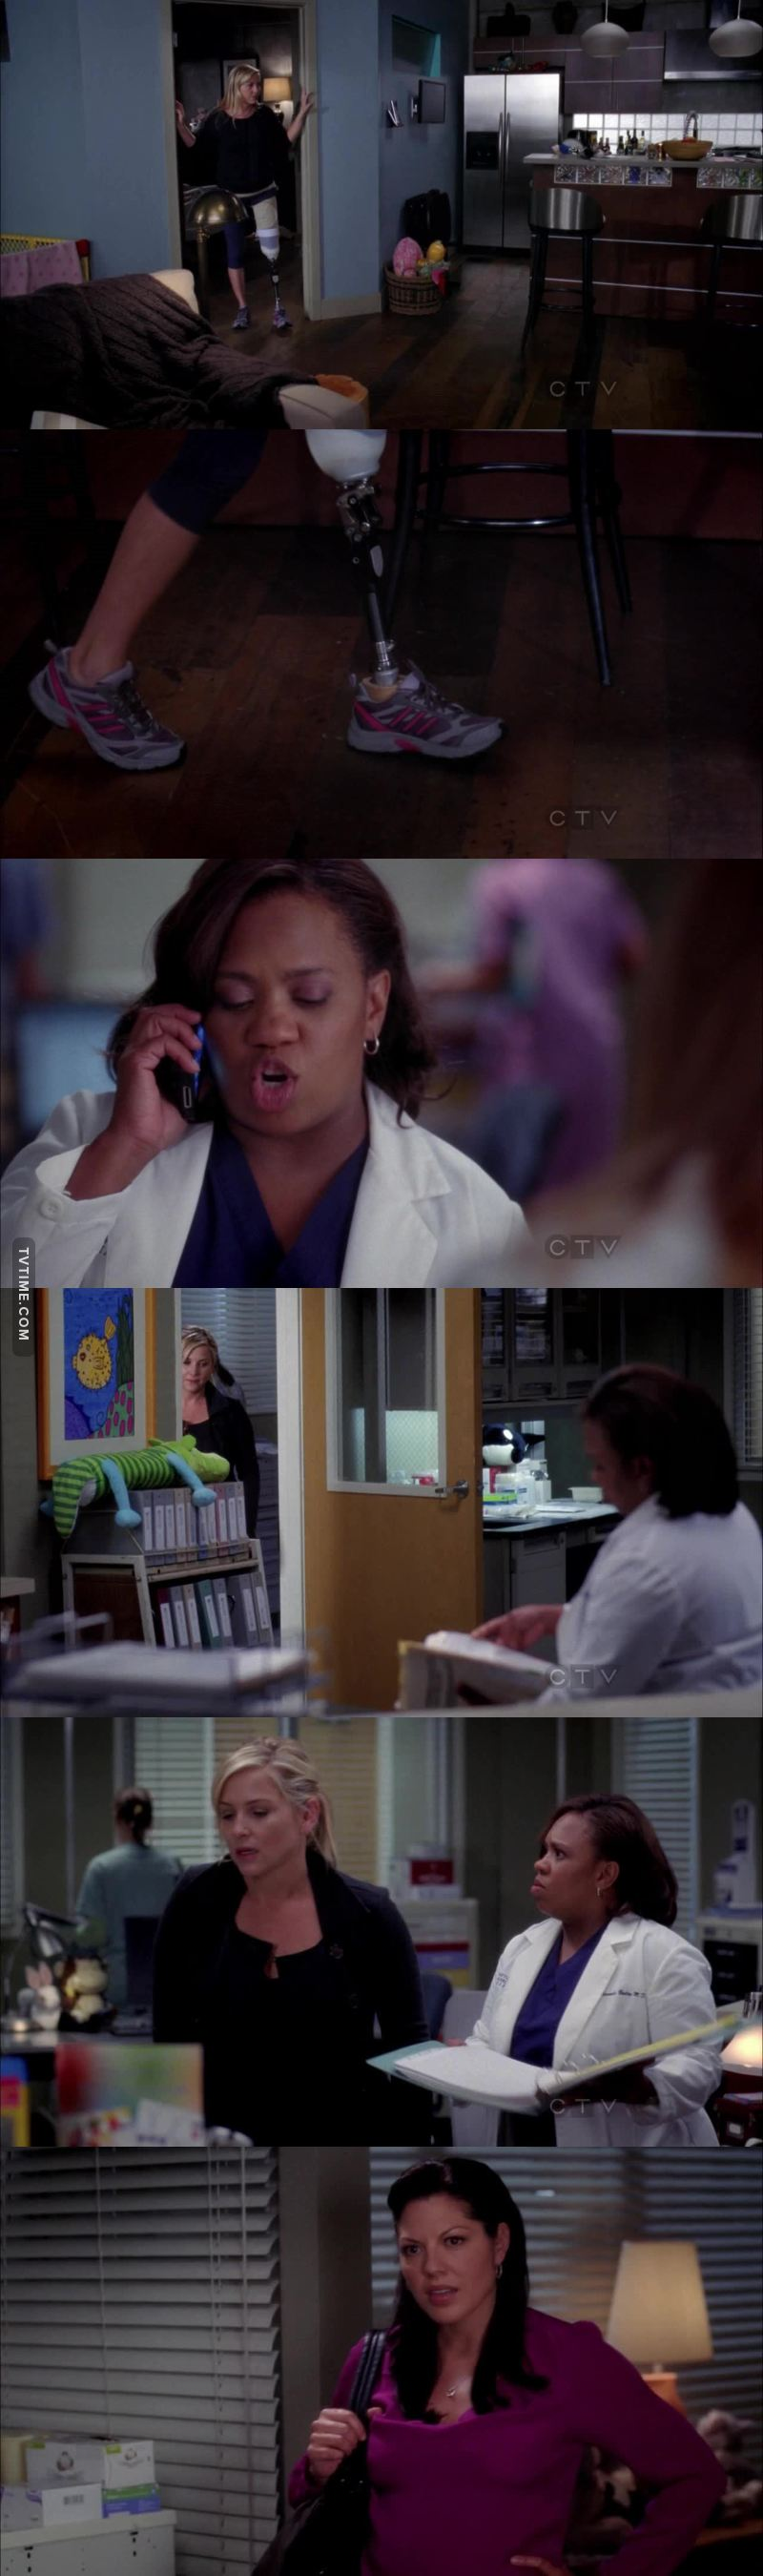 Applause for the one and only Miranda Bailey. 👏🏻